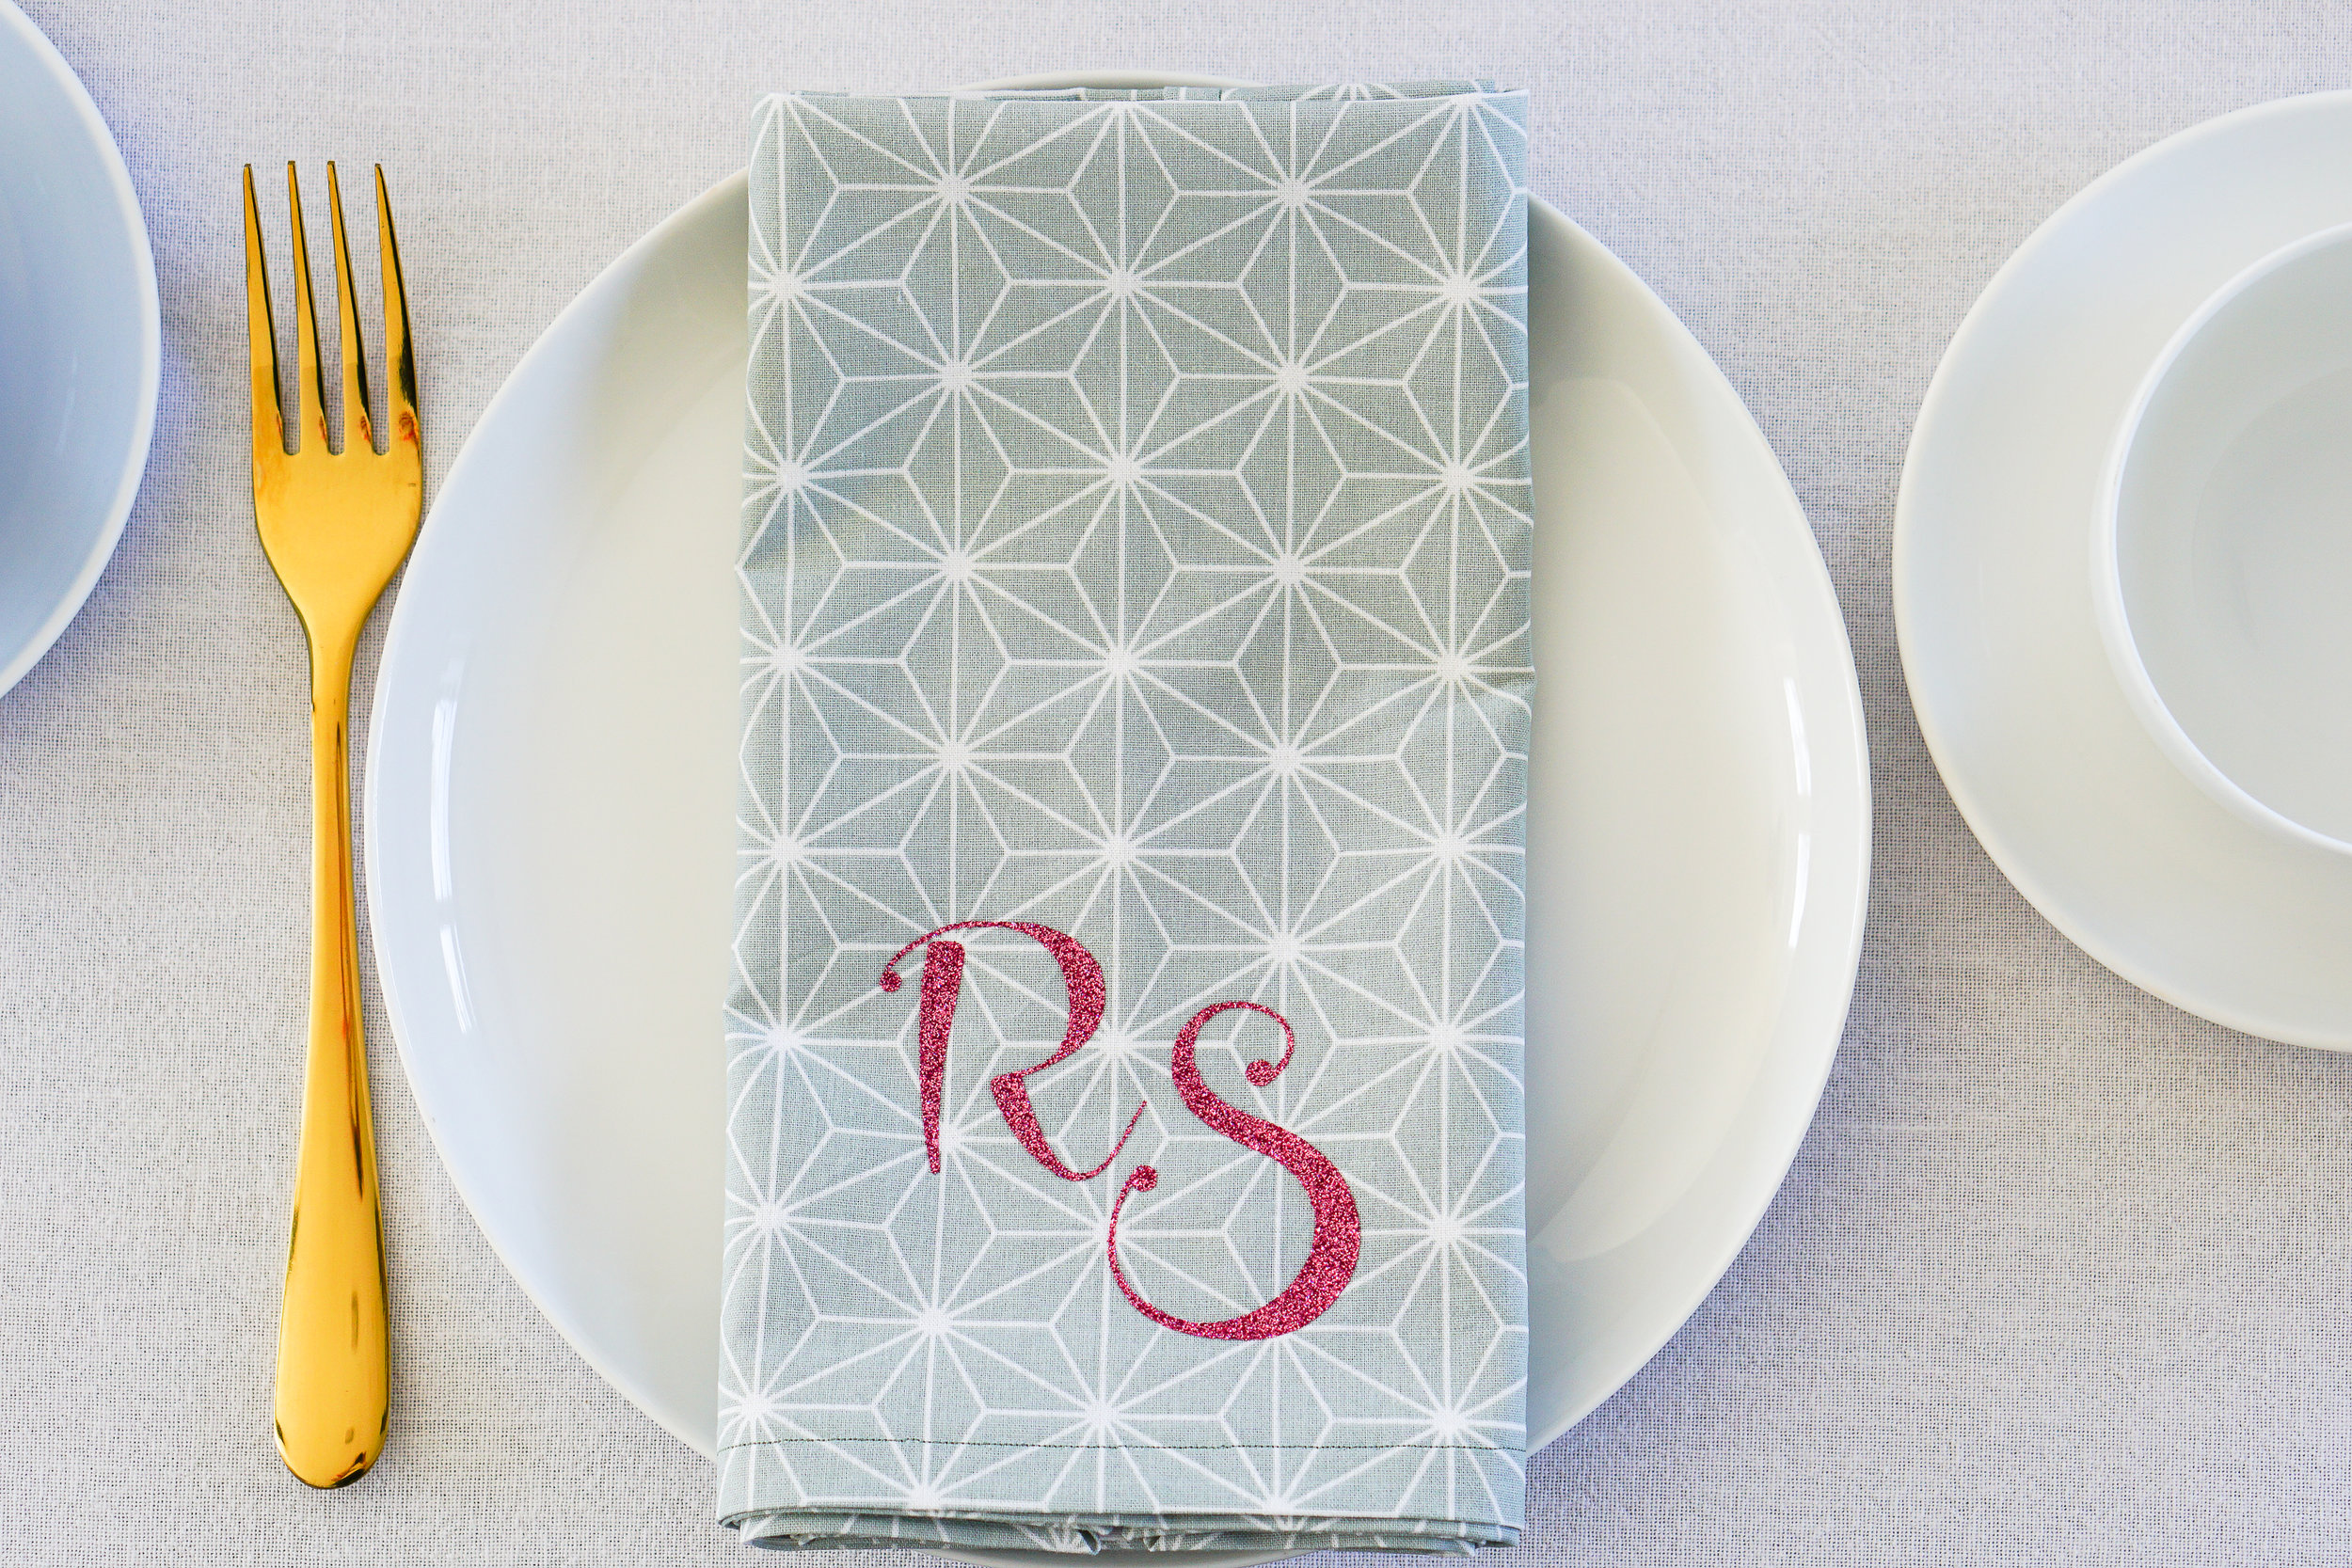 How to make monogrammed napkins with the Cricut EasyPress 2